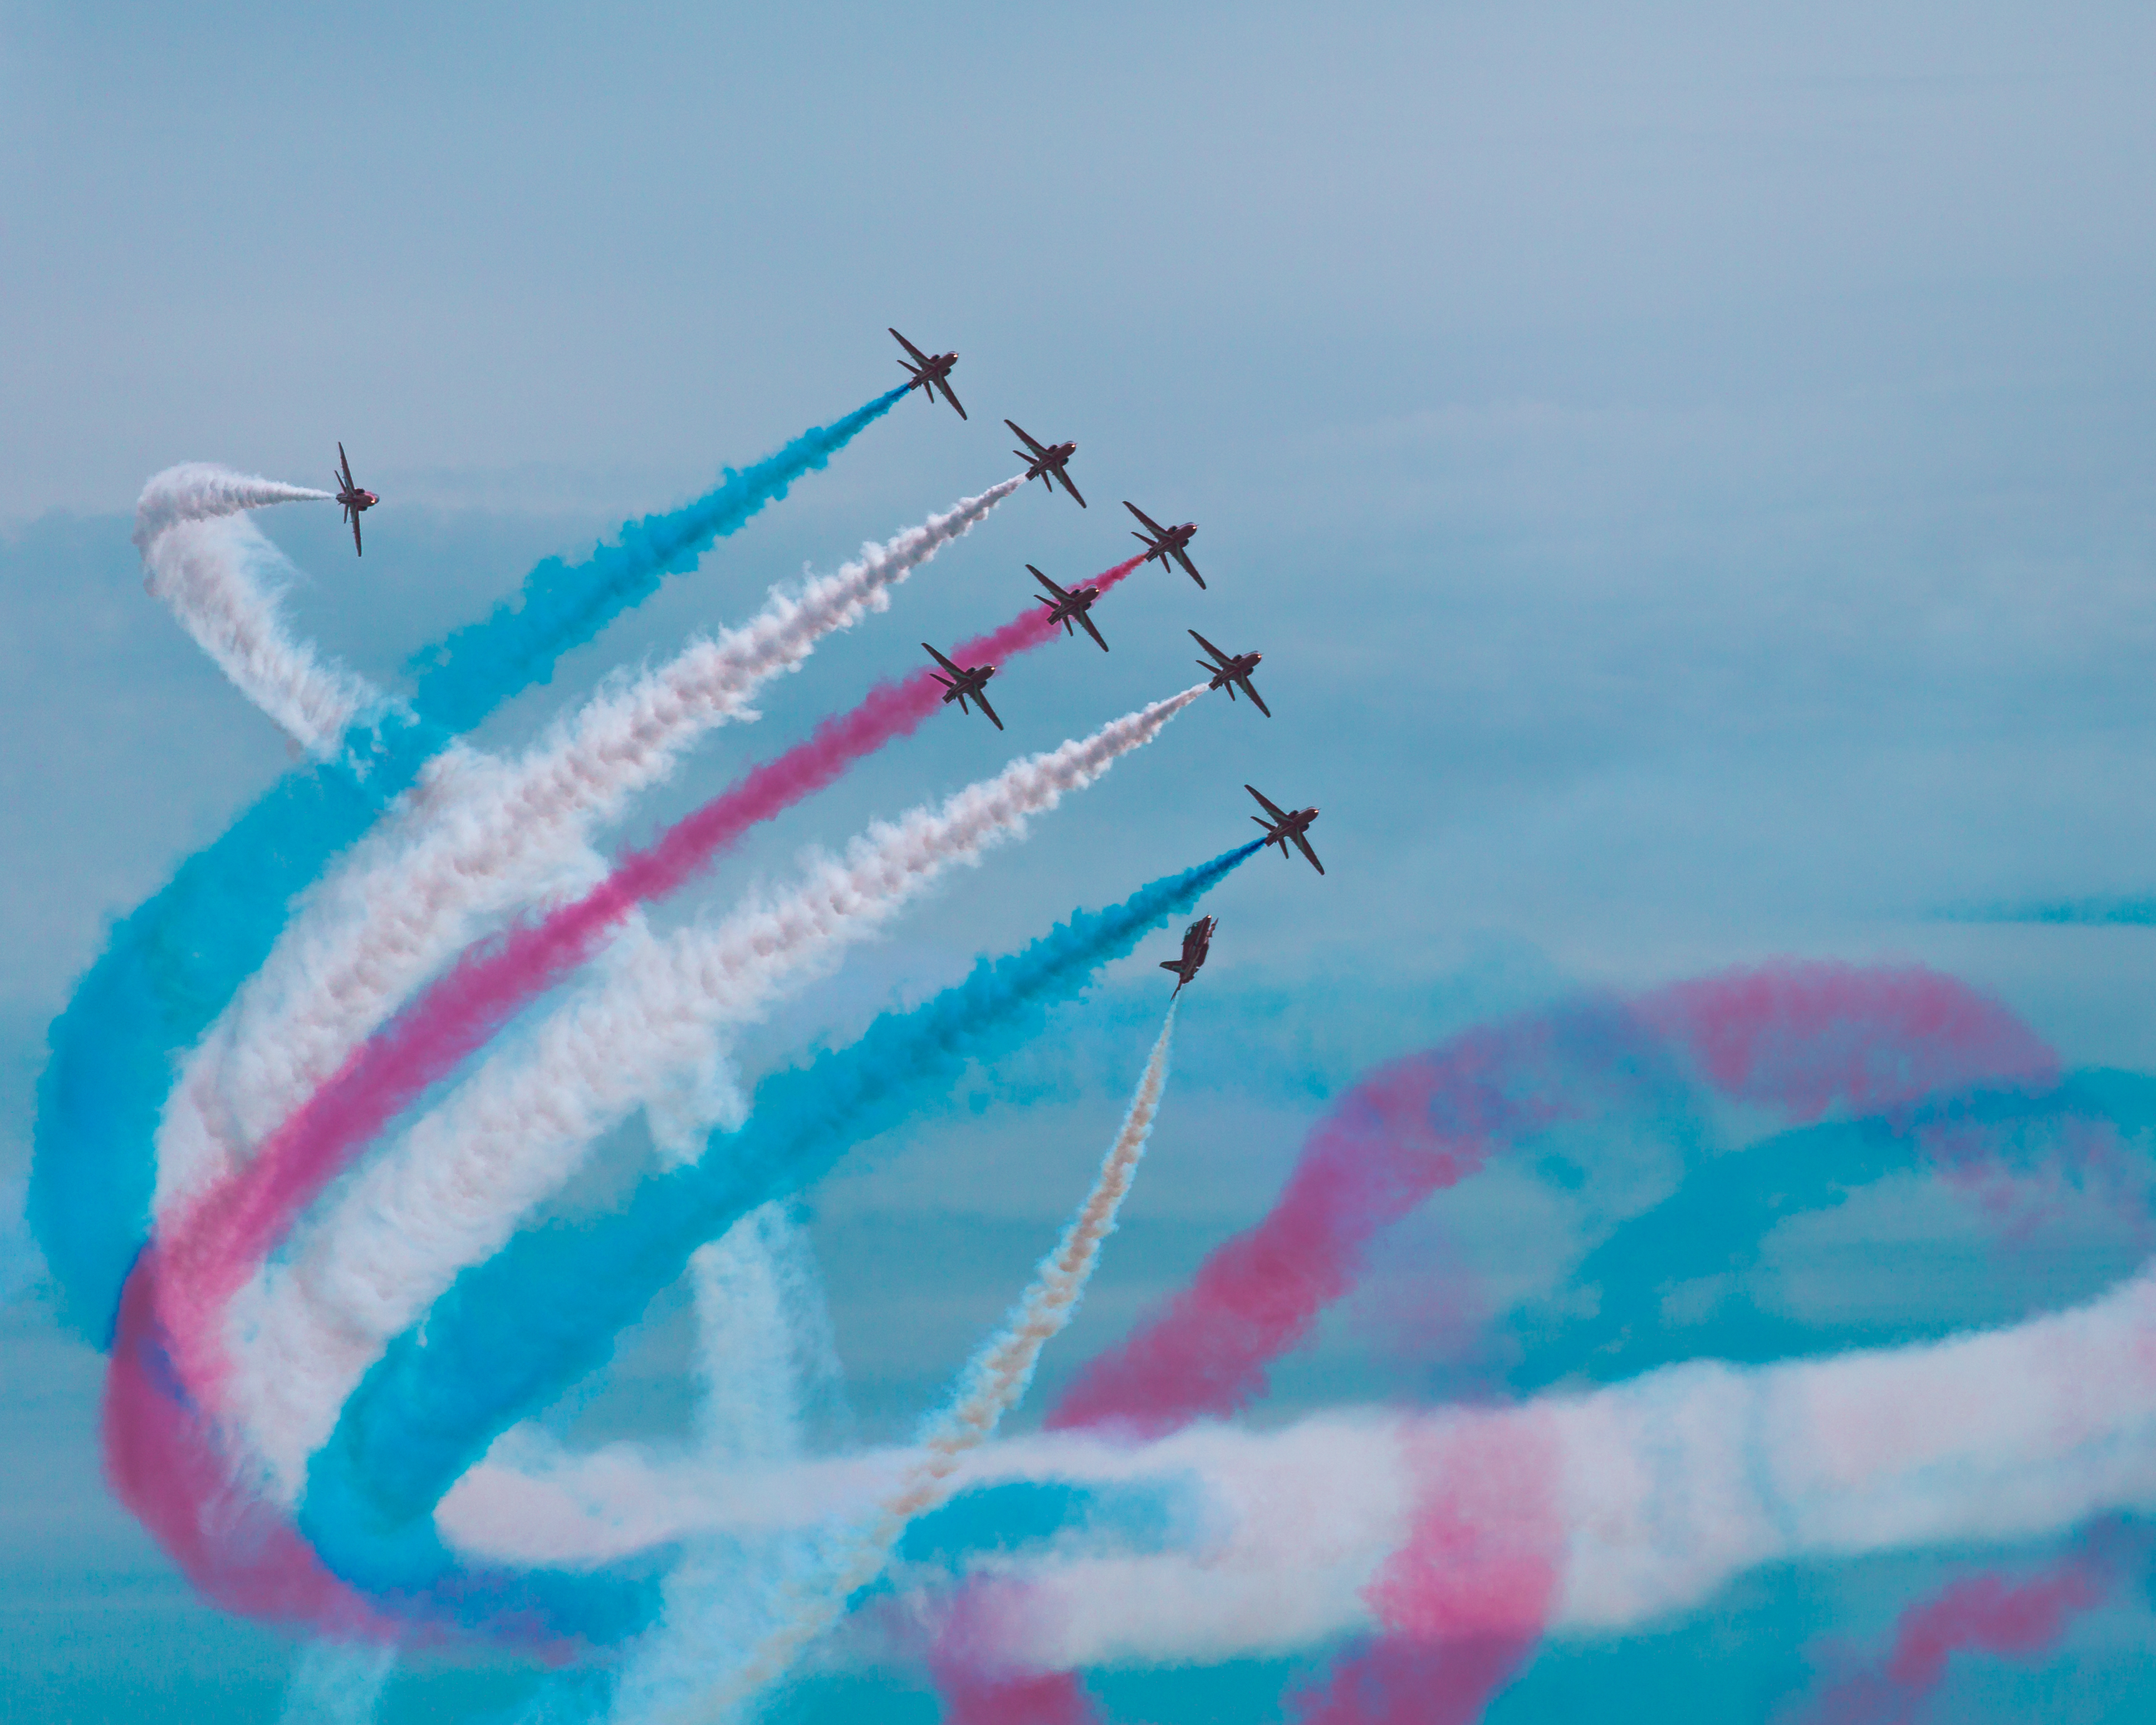 A formation of nine red jet fighters weave in and out, leaving behind an intertwined pattern of red, white, and blue smoke trails.